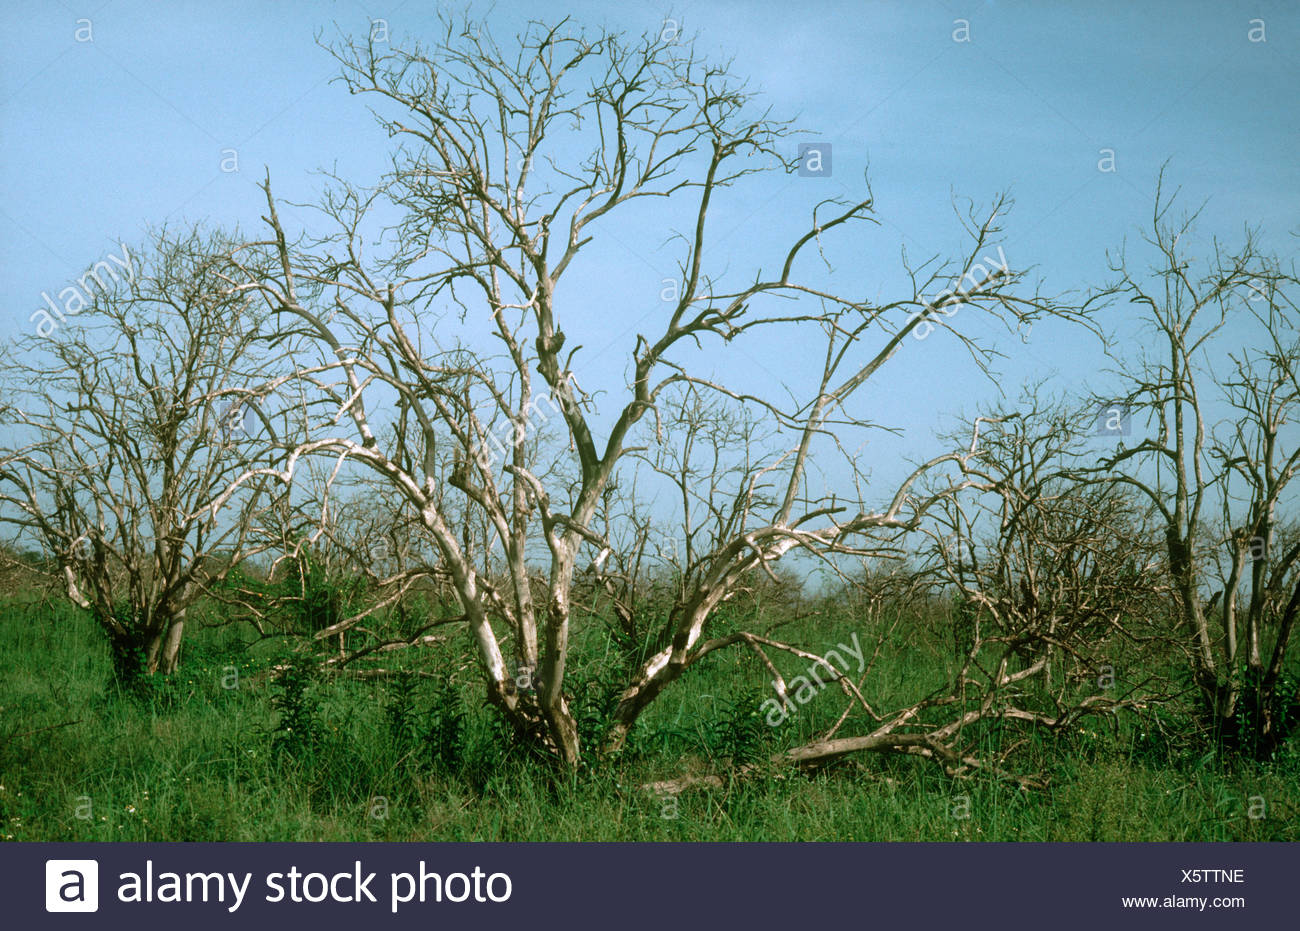 Orange trees killed by unusually severe frost in northern Florida USA - Stock Image